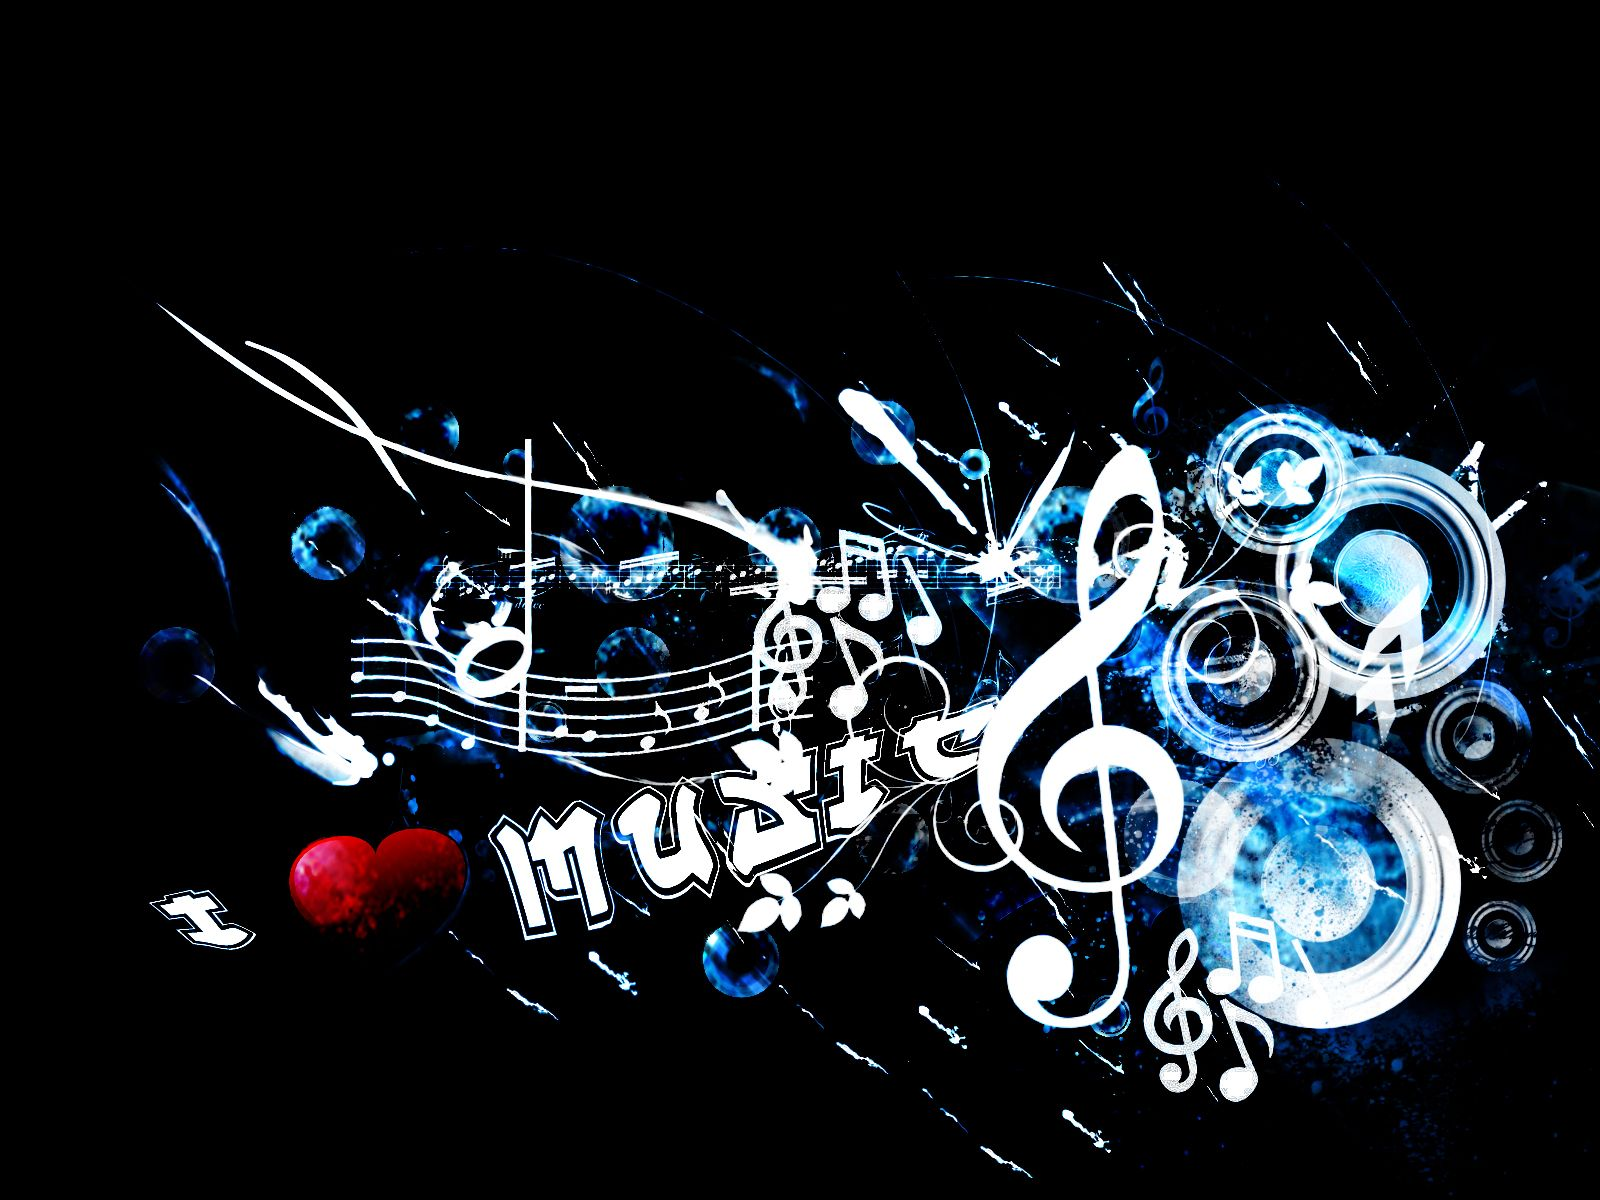 pianosoftware Abstract Music Wallpapers | Abstract Music ...